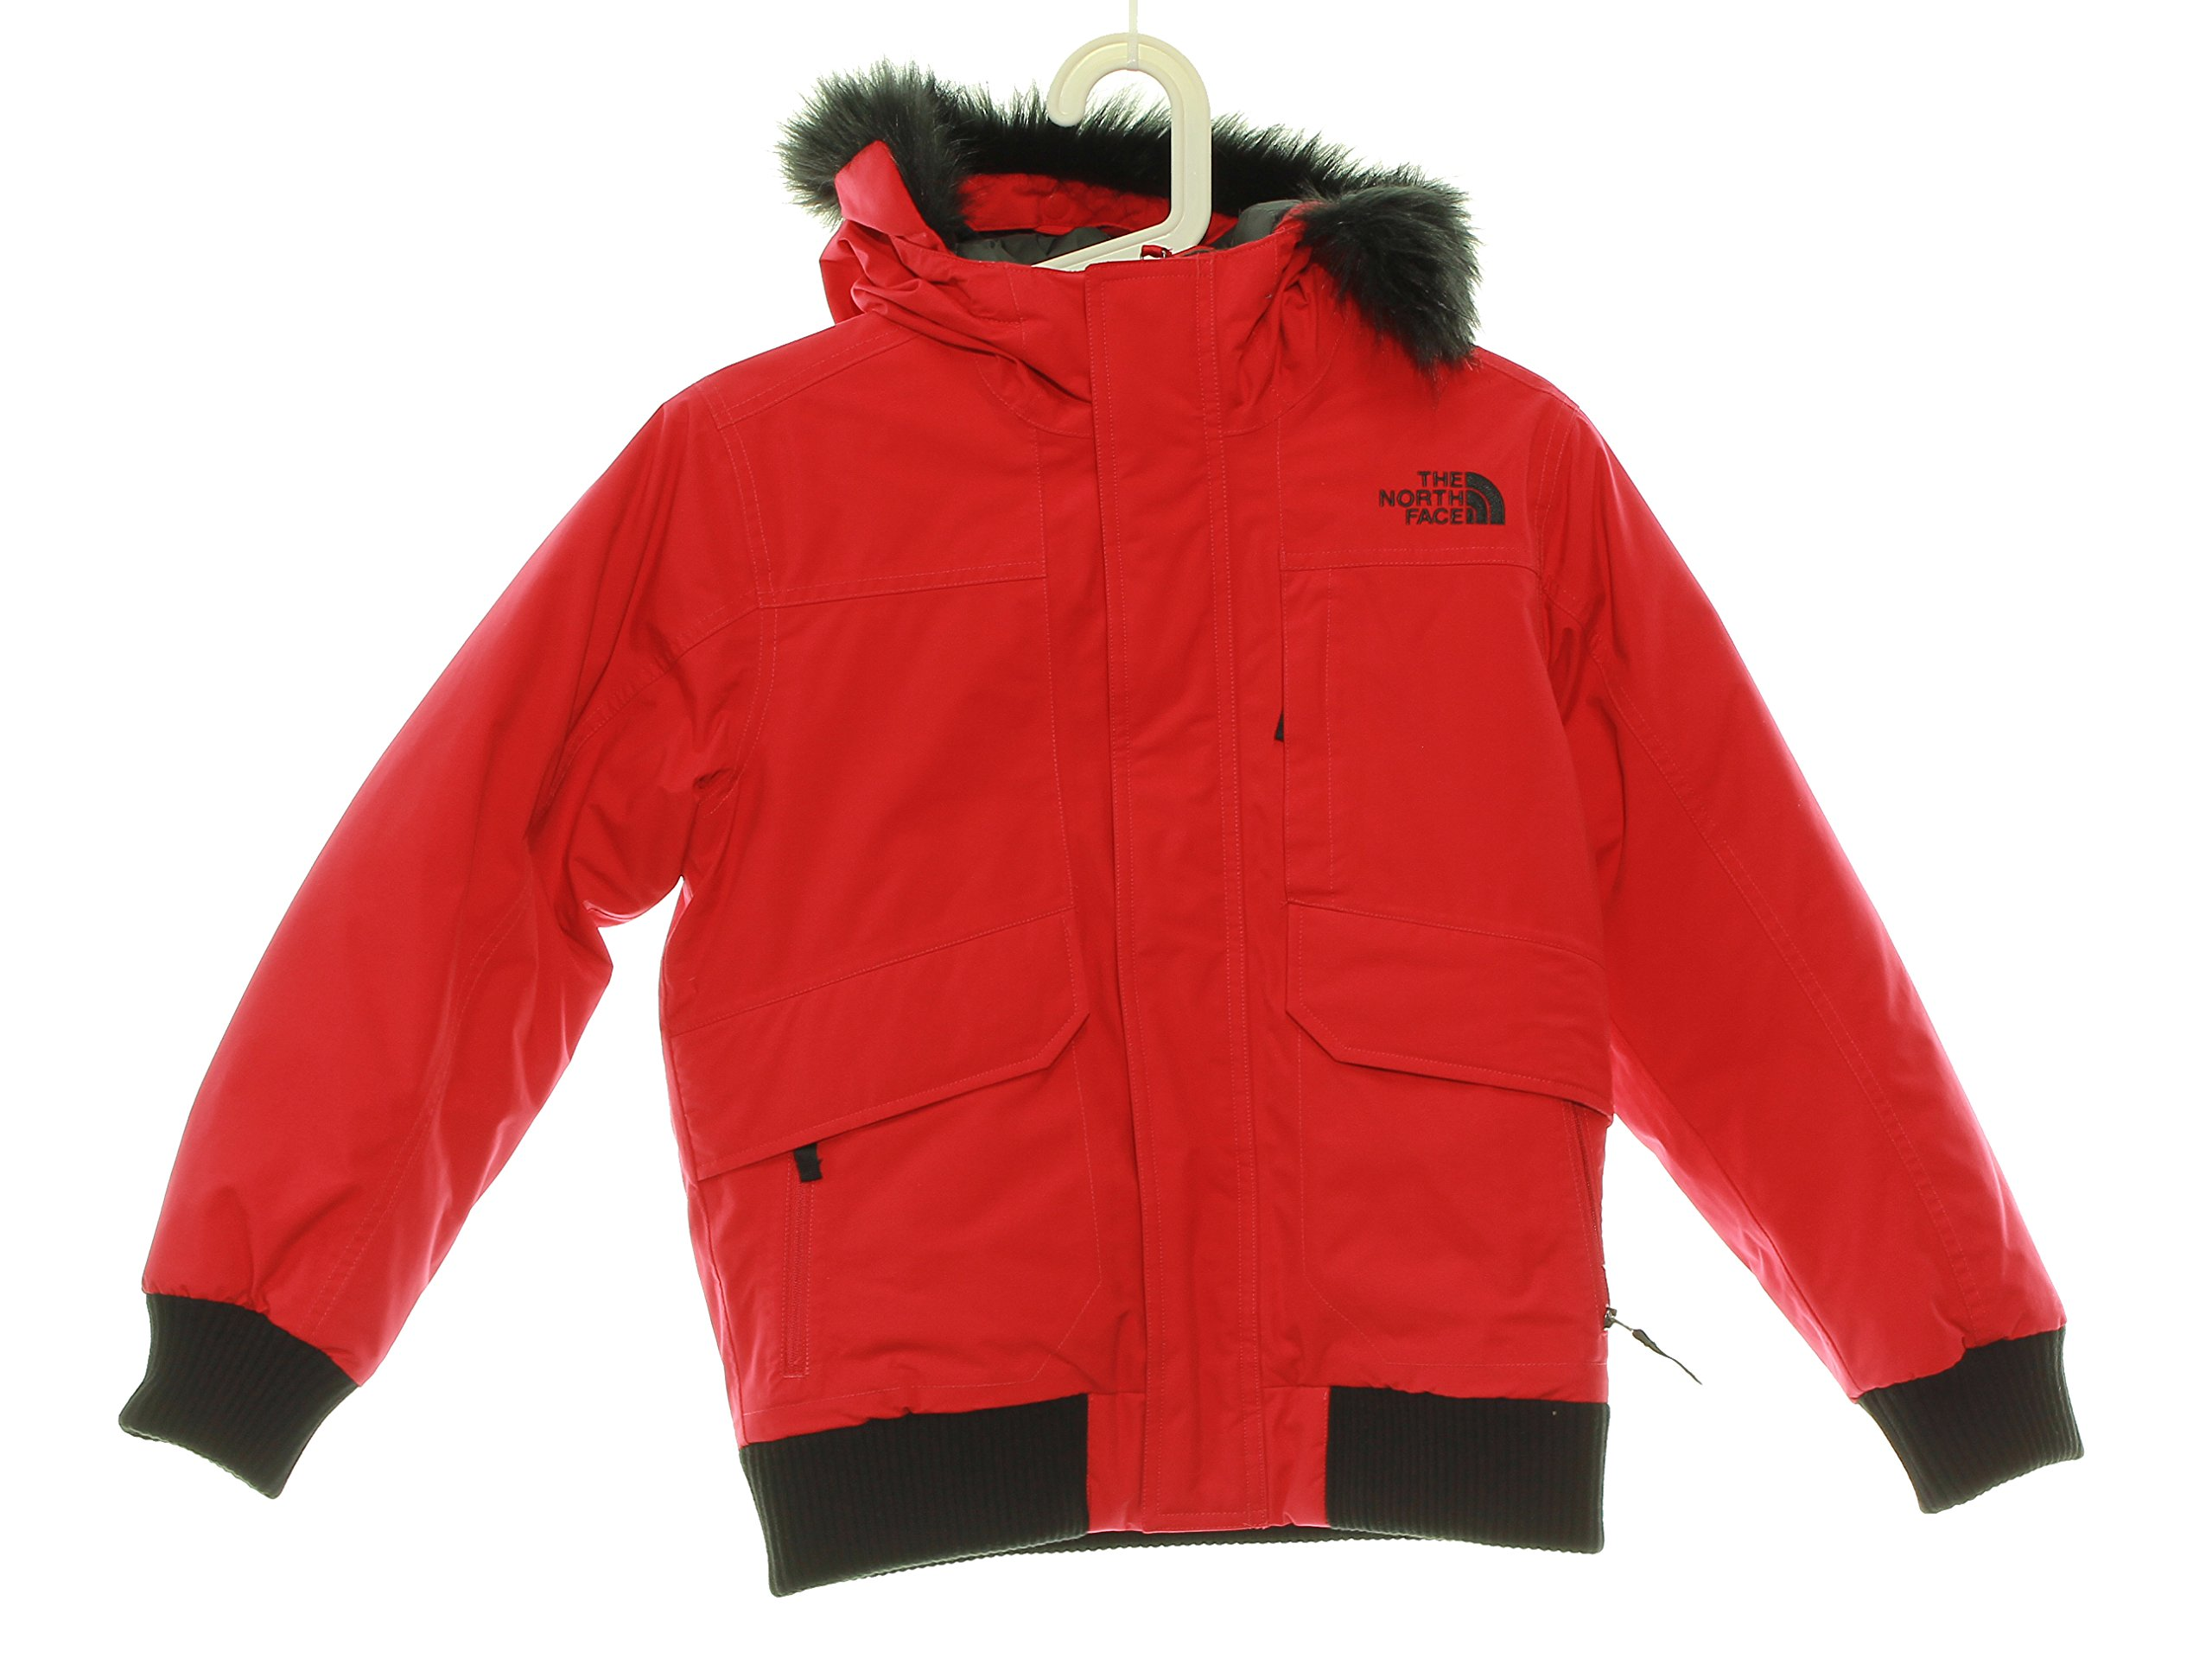 Boy's The North Face Gotham Down Jacket 10/12 Red, Medium by No Warranty The North Face